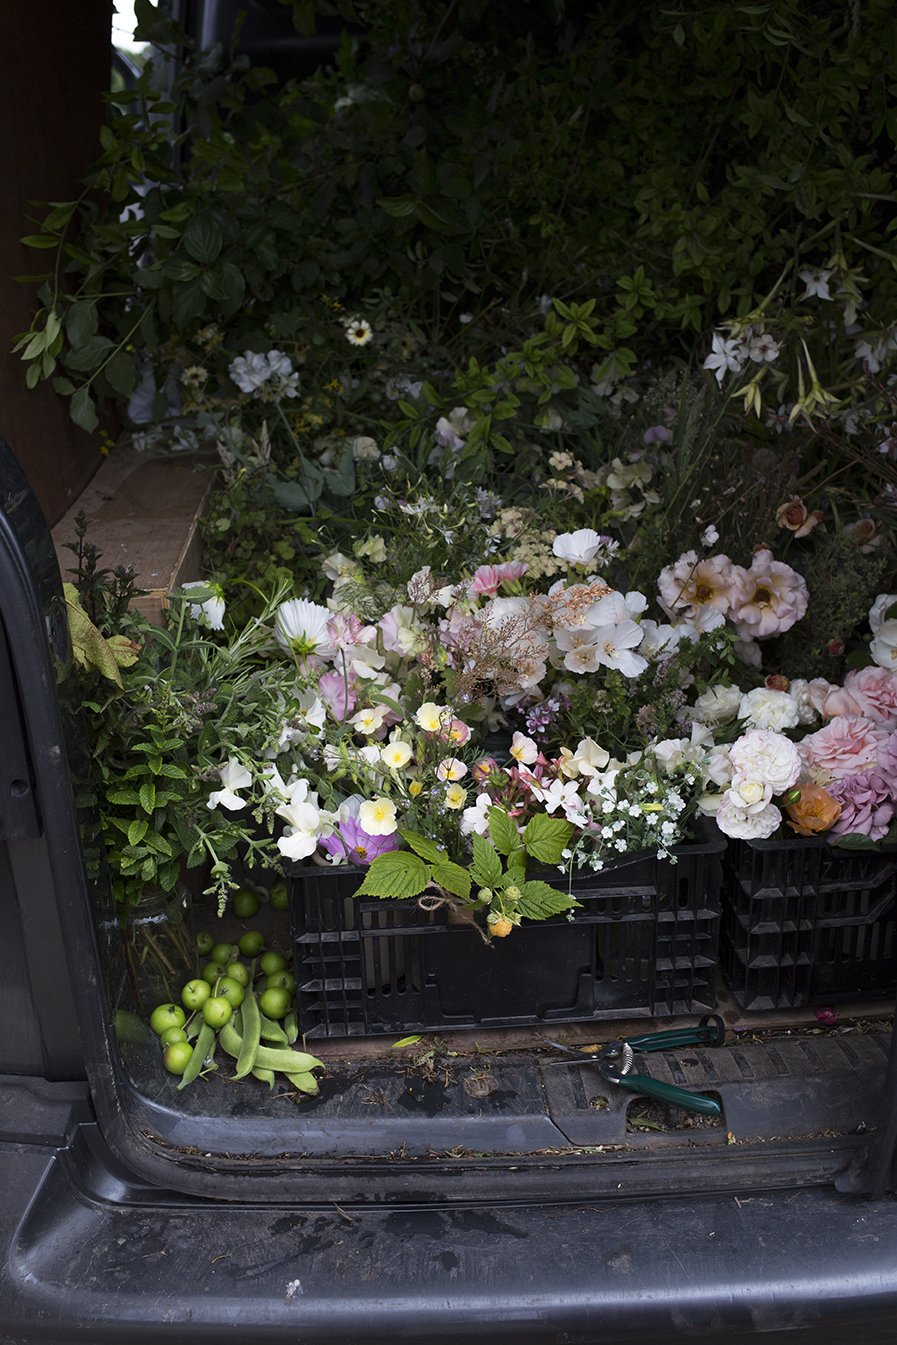 A packed van of freshly cut flowers on their way to London for conditioning and arranging in the studio - the beans are grown foremost for their beautiful flowers and then later in the summer for the vegetable harvest